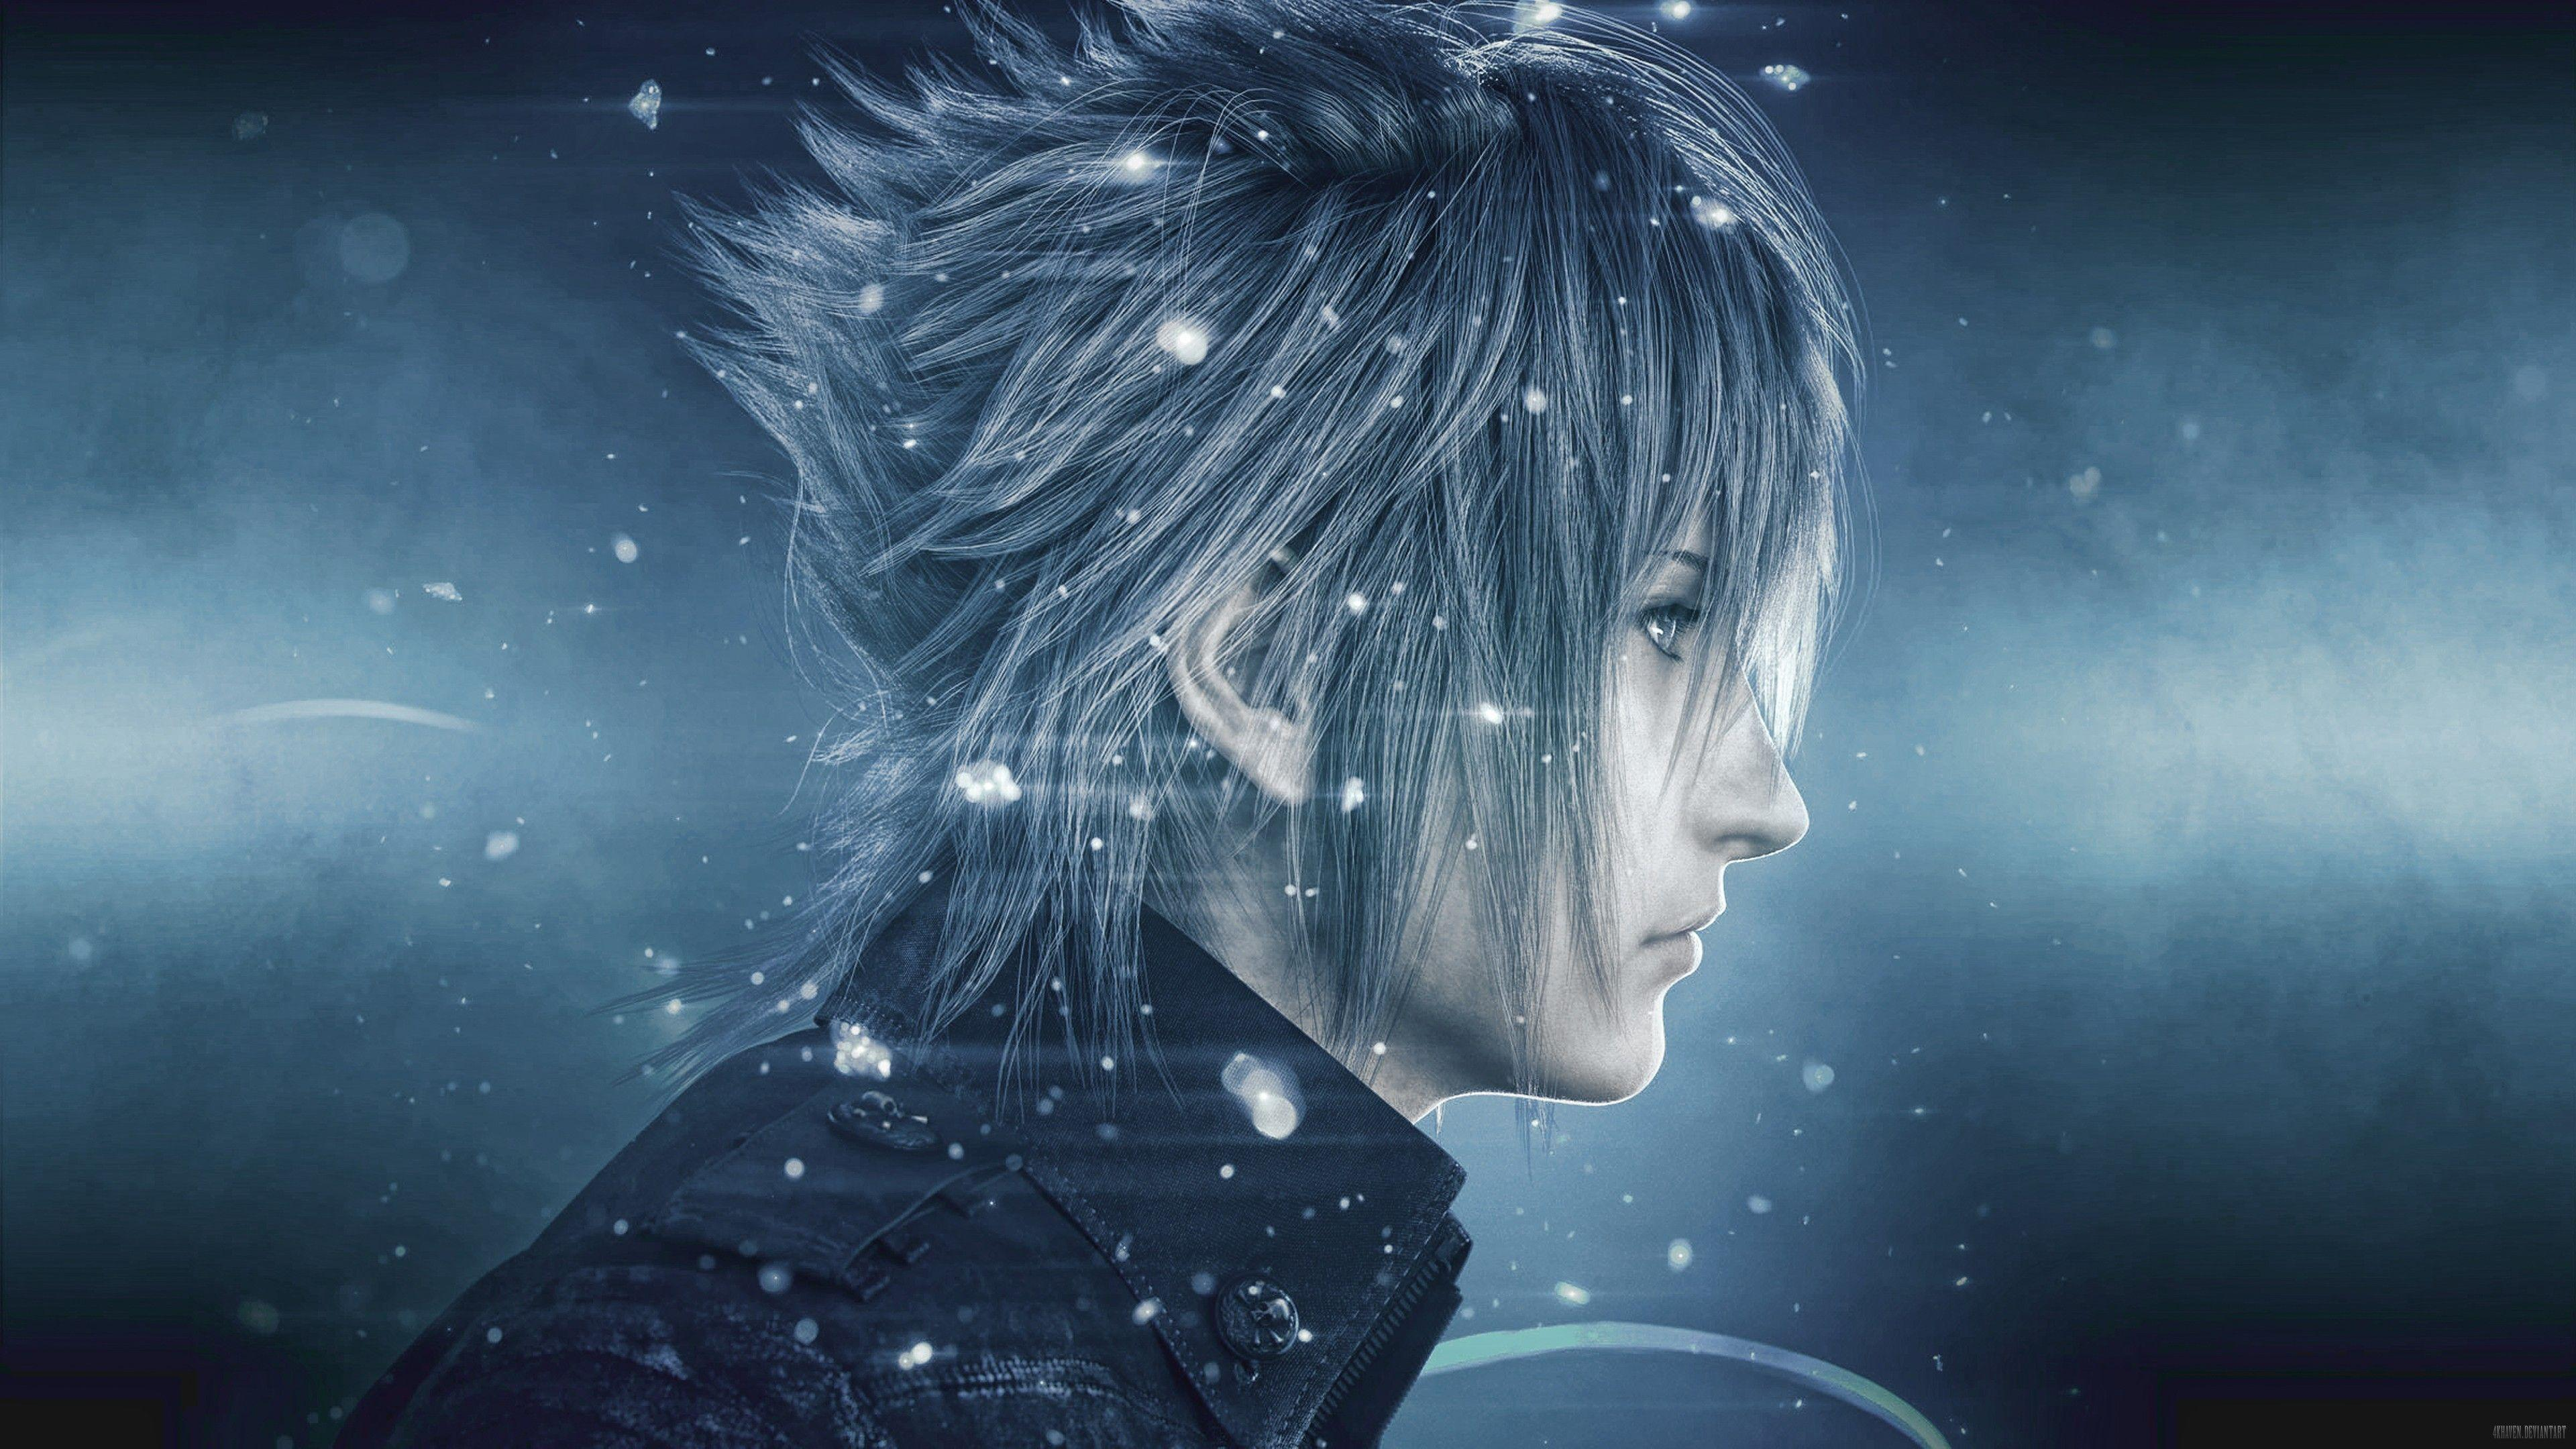 final fantasy xv wallpapers wallpaper cave